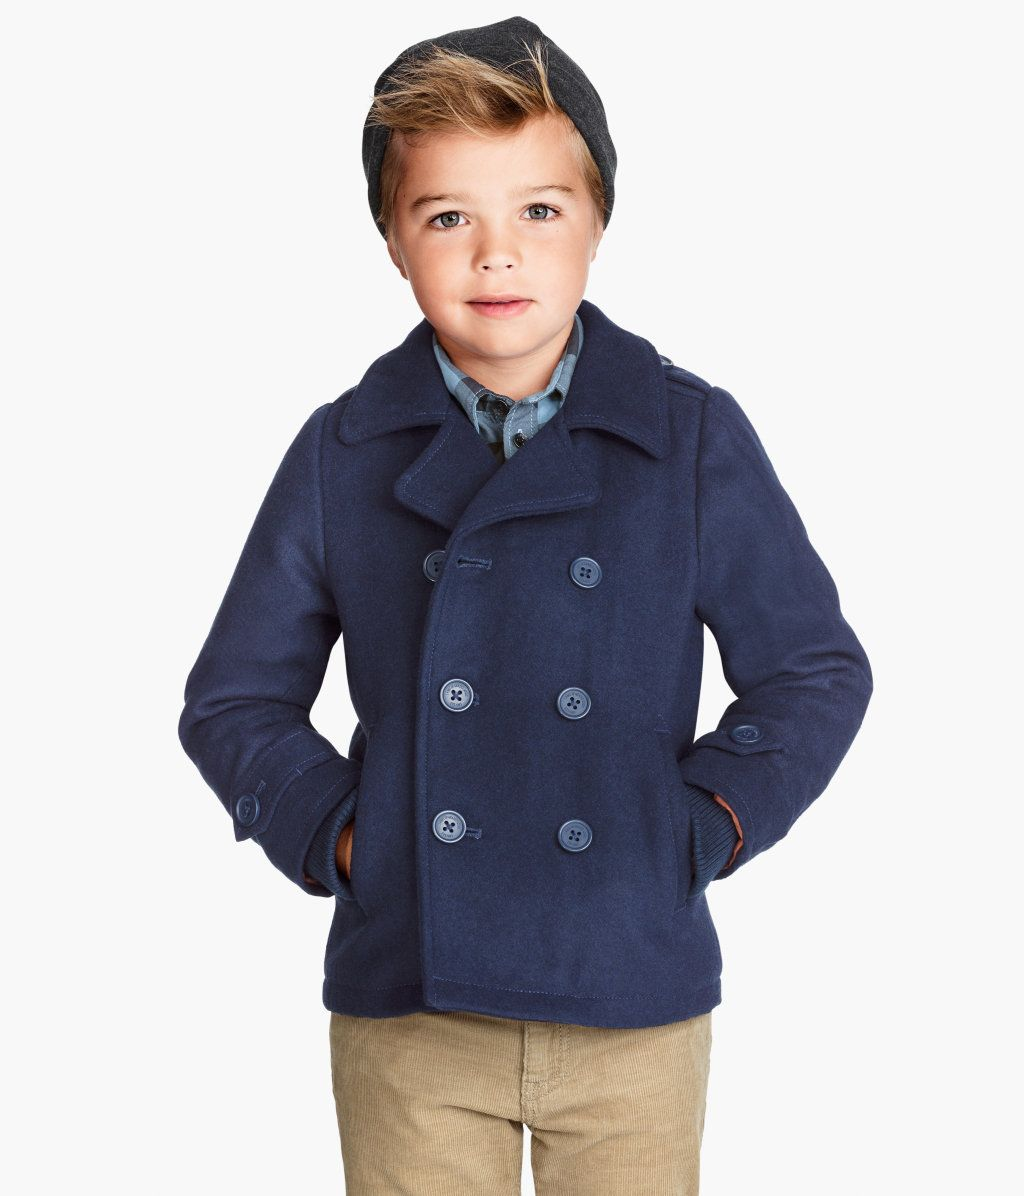 Peacoat from bestsupsm5.cf Shop clothing & accessories from a trusted name in kids, toddlers, and baby clothes.